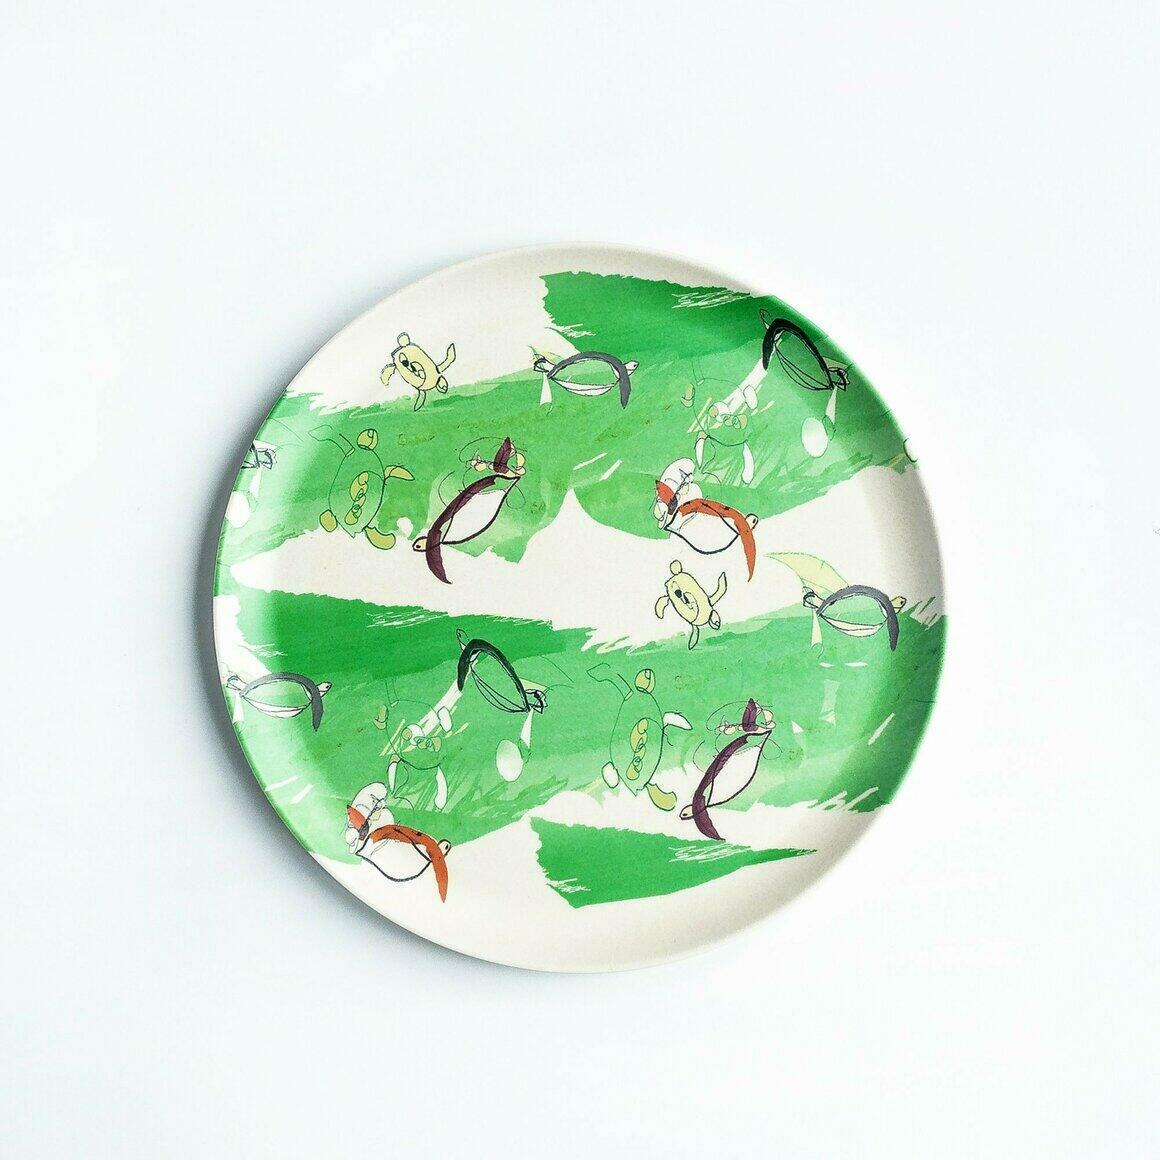 Bamboo plate with green turtle design | Trada Marketplace